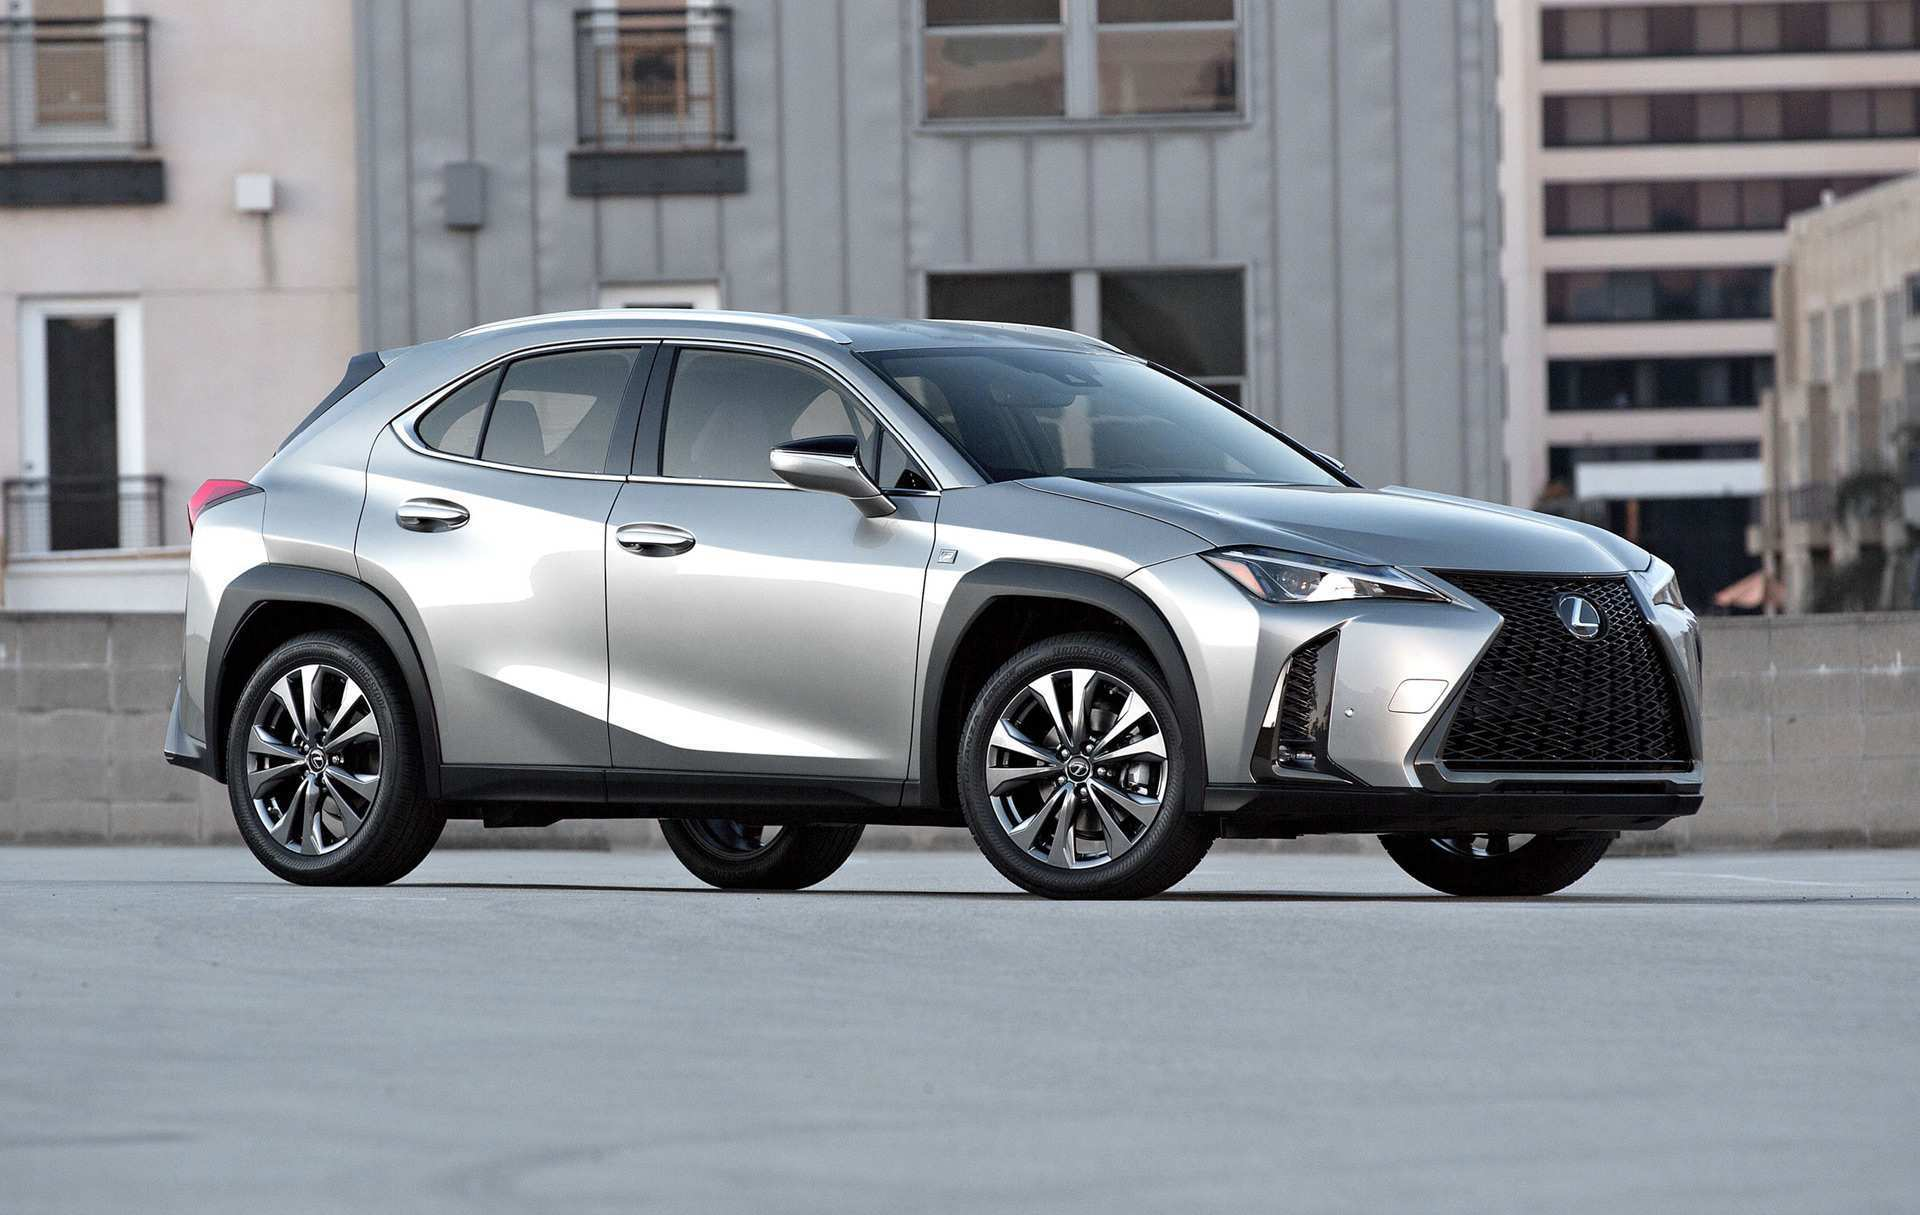 39 Great Lexus 2020 Suv Ux Release Date for Lexus 2020 Suv Ux